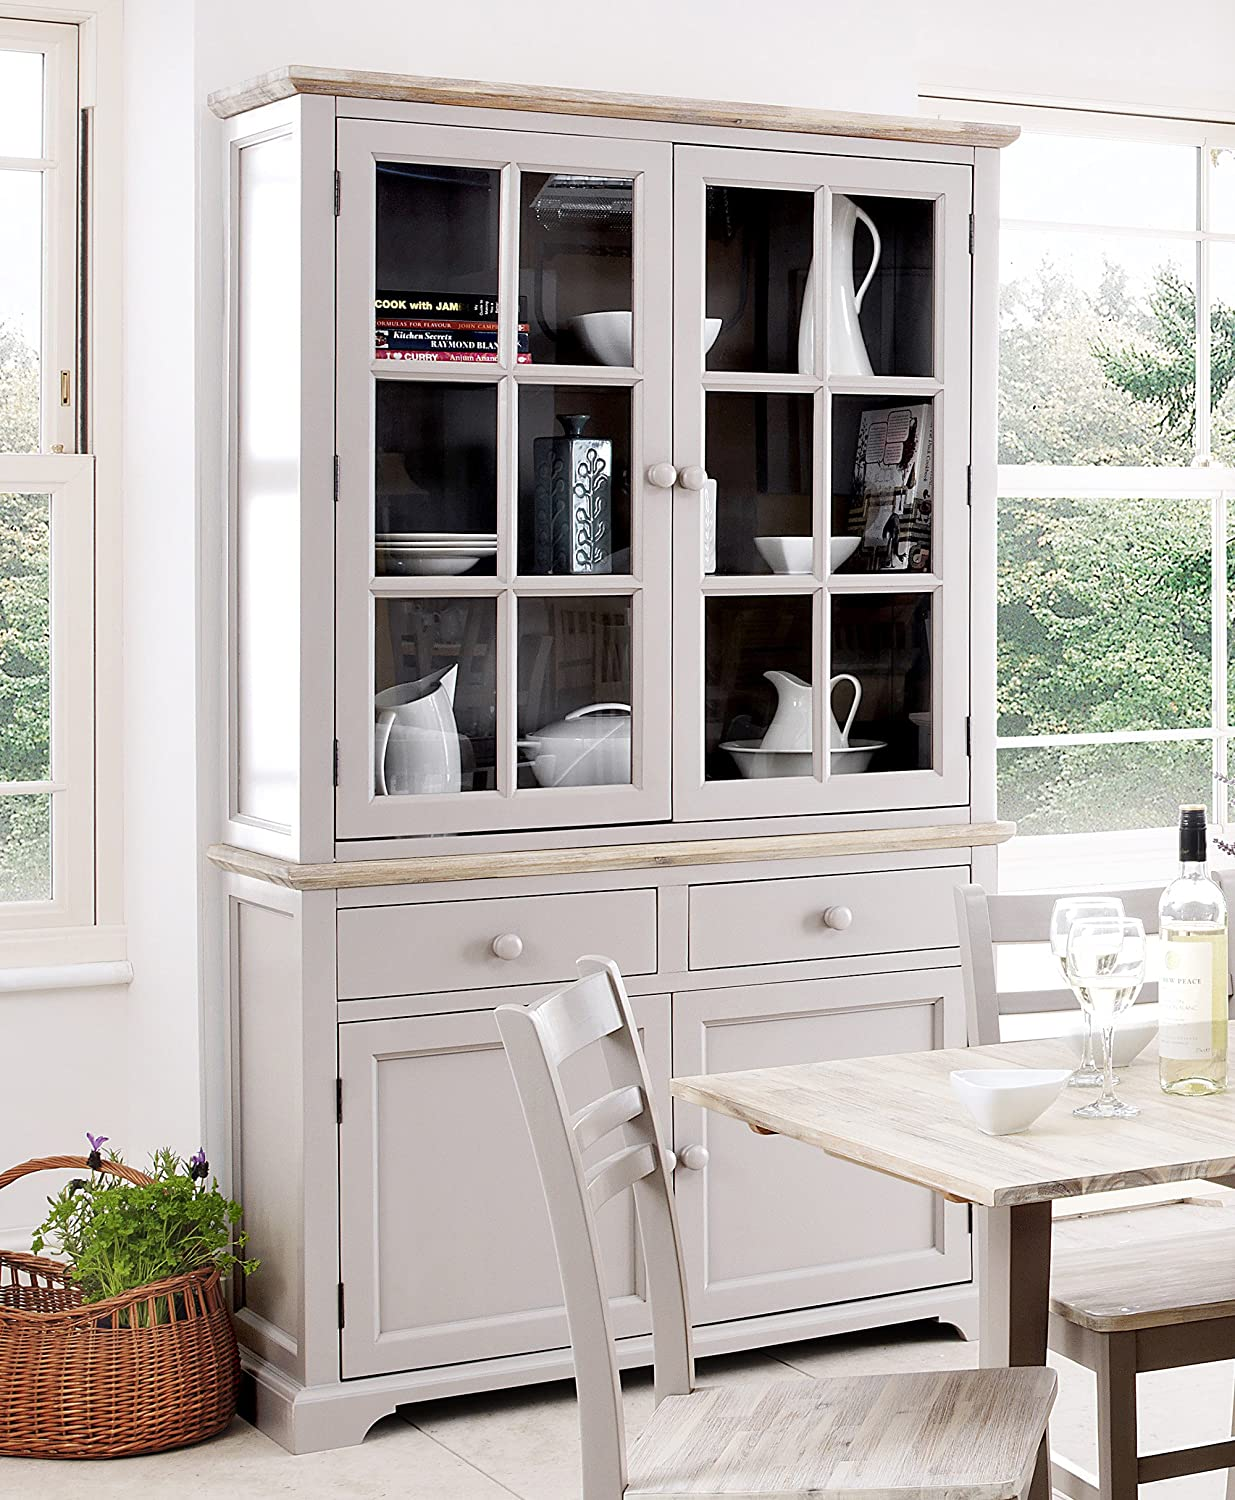 Florence Display Cabinet Large Truffle Kitchen Dining Dresser With Glass Doors Shelves And Drawers Fully Assembled Amazon Co Uk Kitchen Home